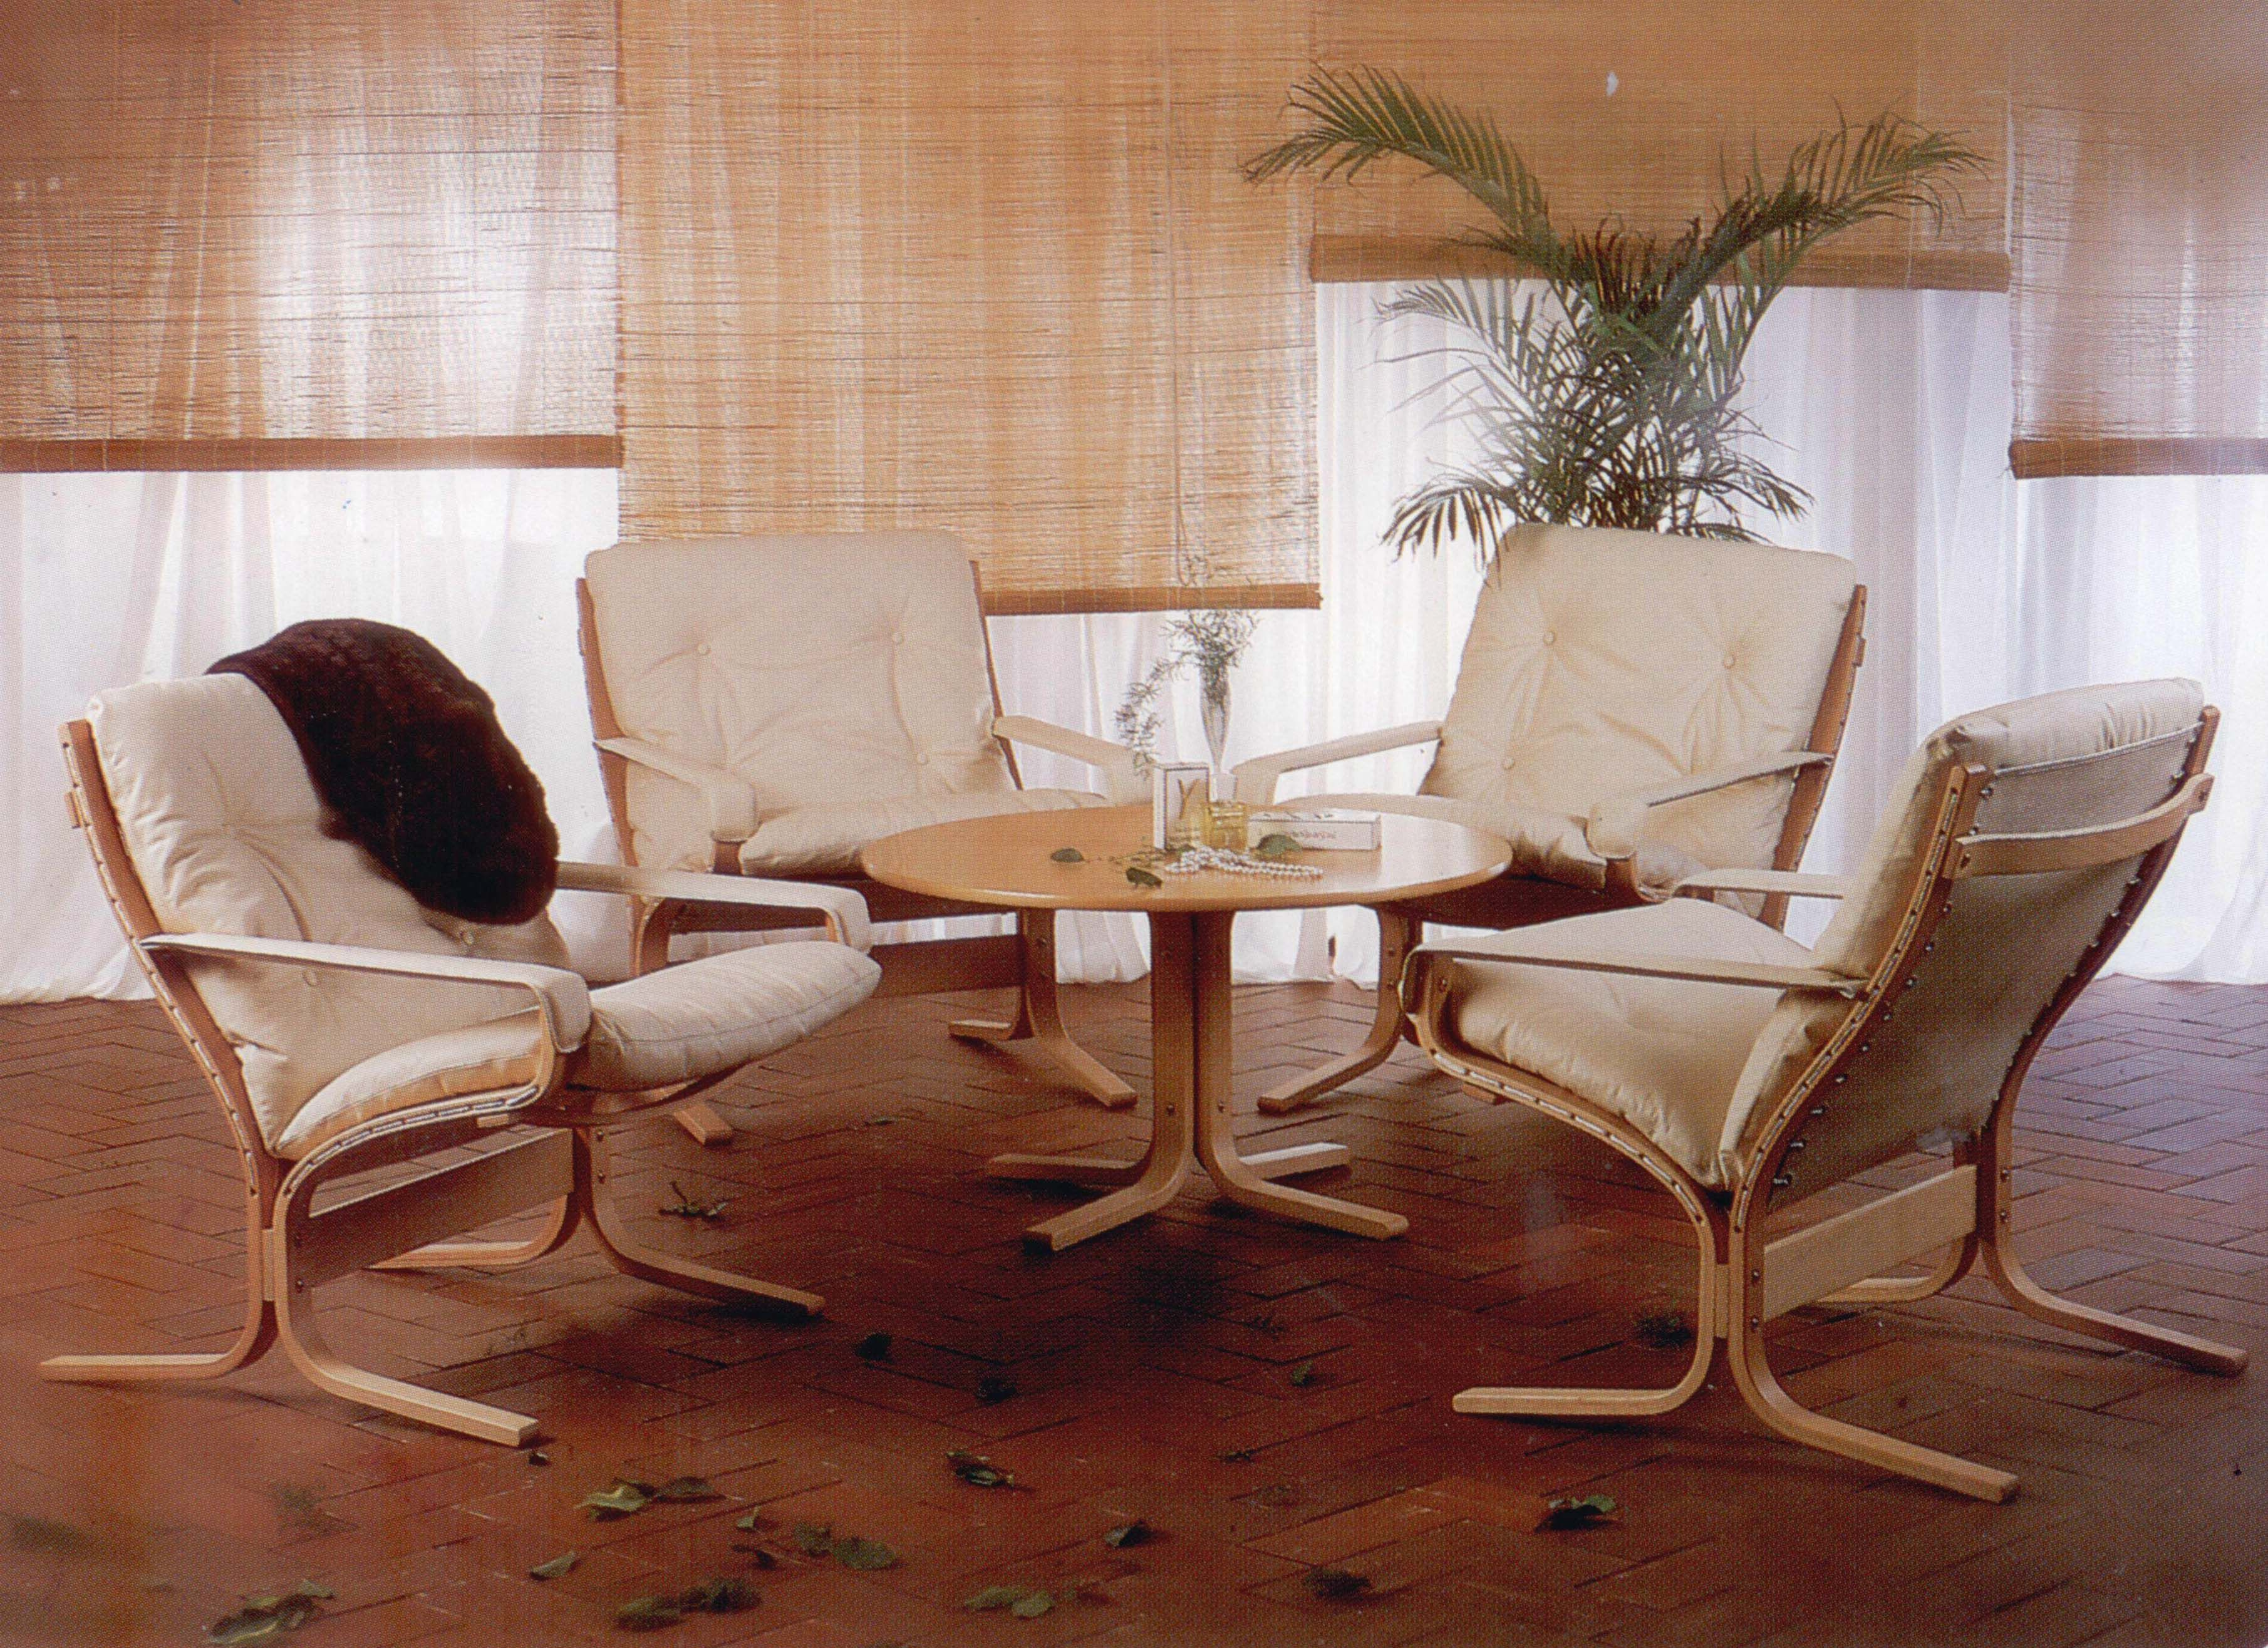 How to repair or replace a 1960s Siesta chair